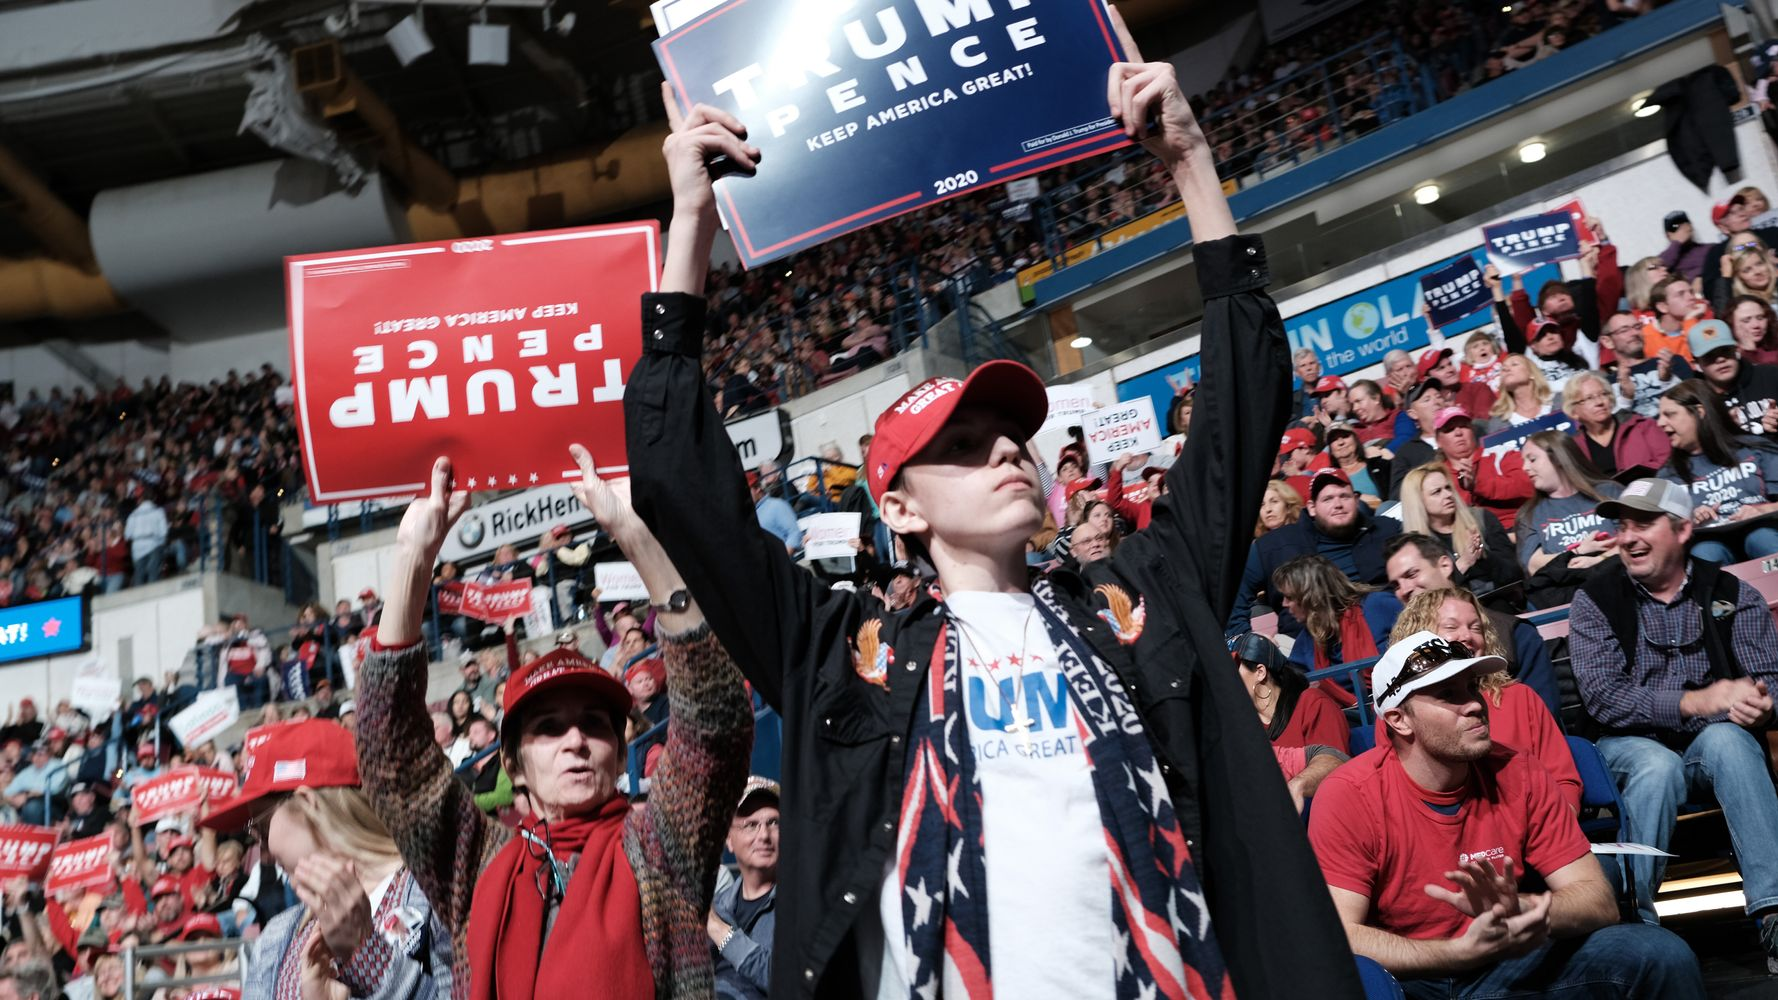 Trump Supporters Unmoved By 'Operation Chaos' Effort To Boost Sanders